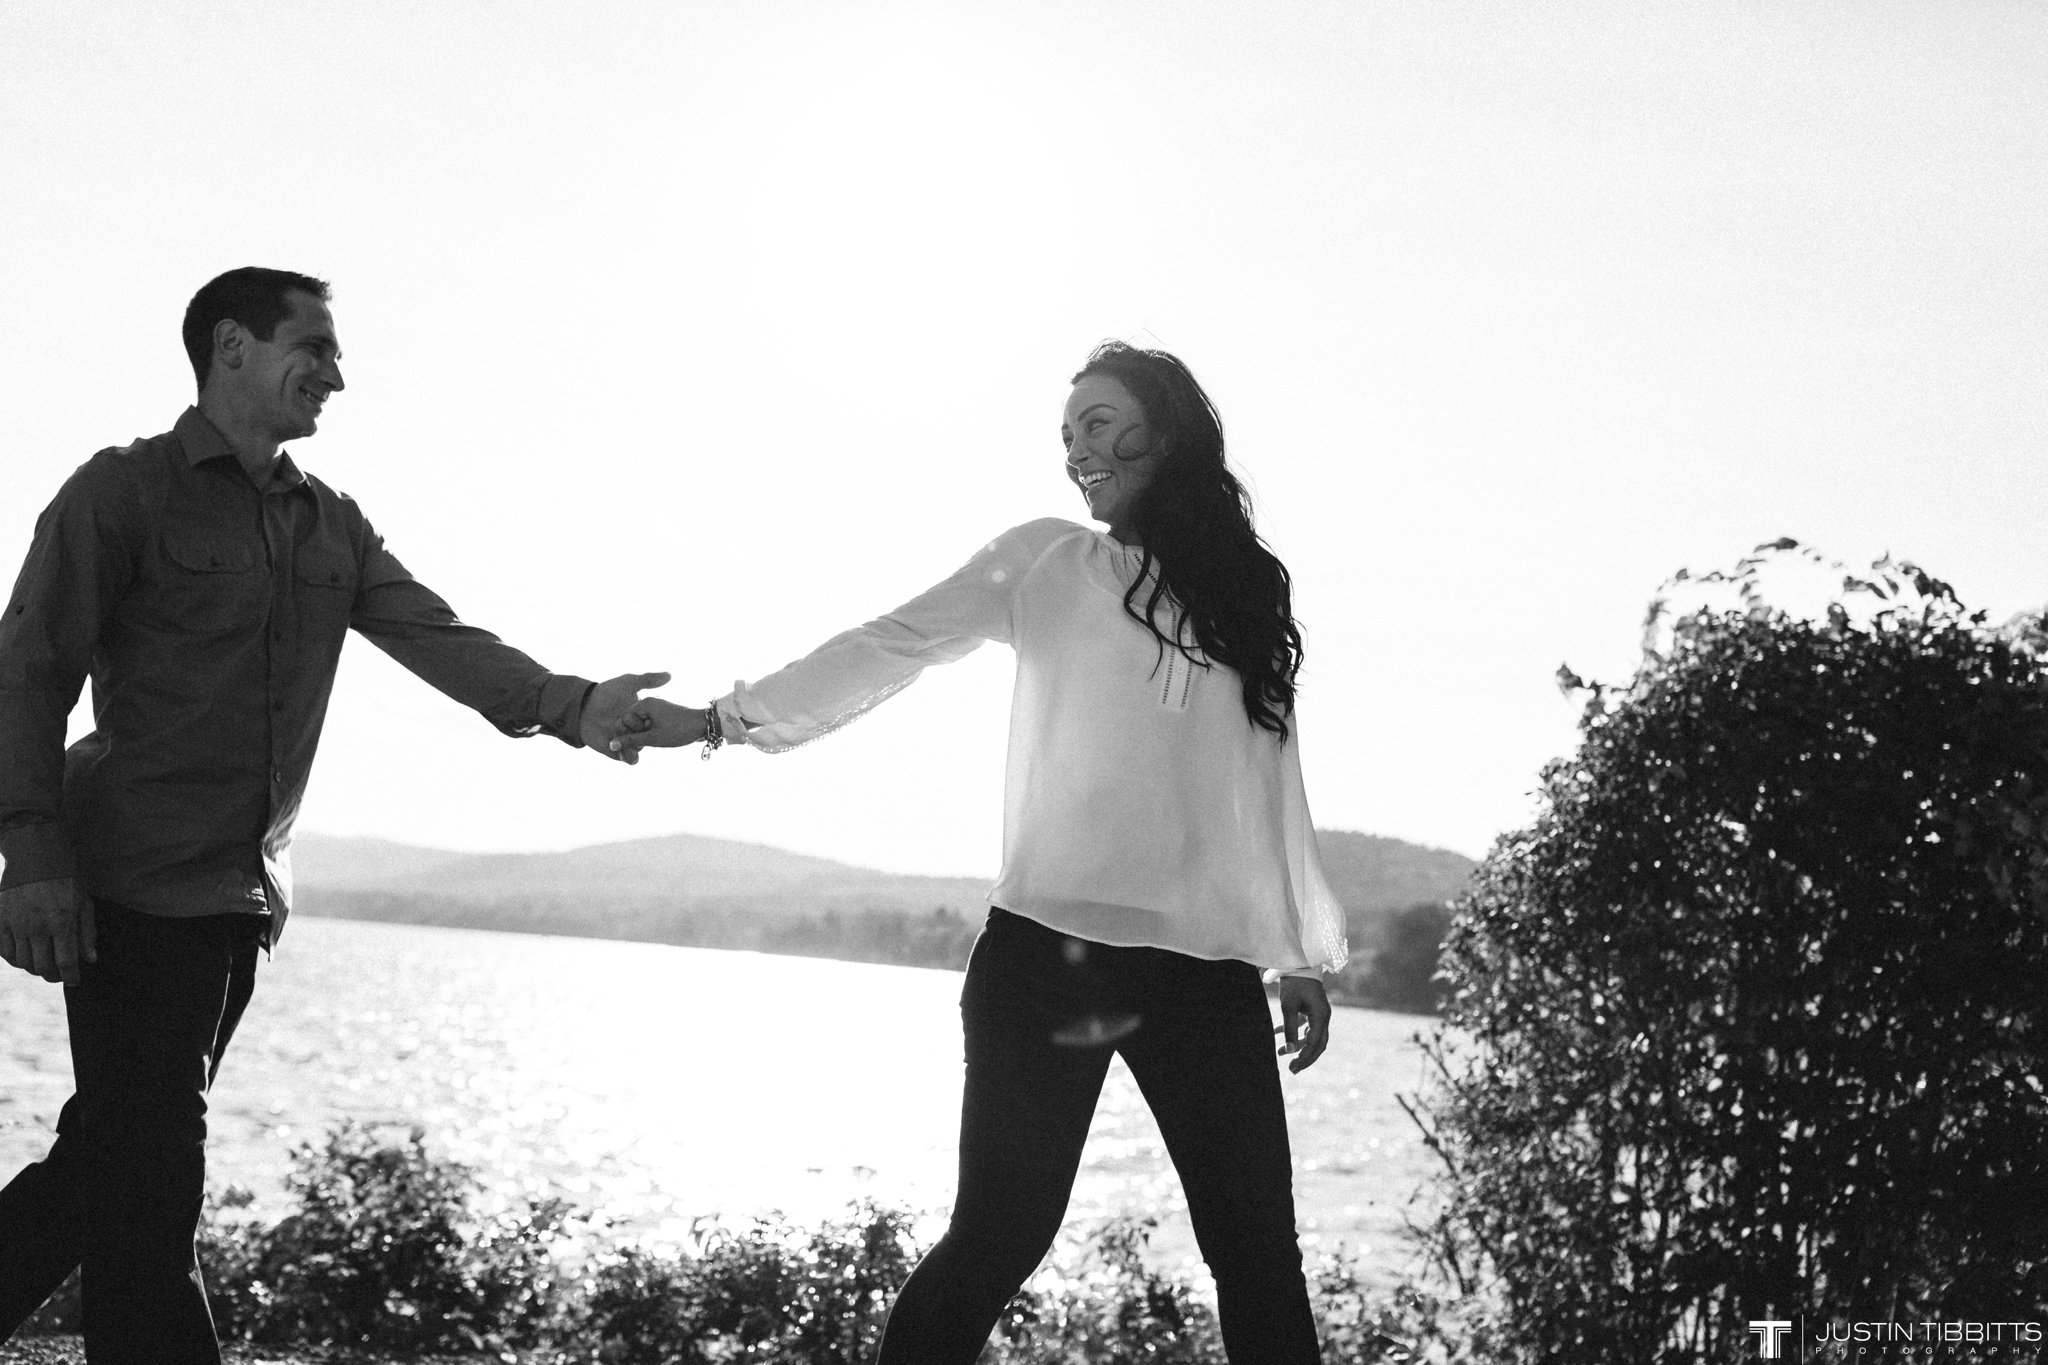 sagamore-engagement-photos-by-justin-tibbitts-photography-with-laina-and-mike_0007